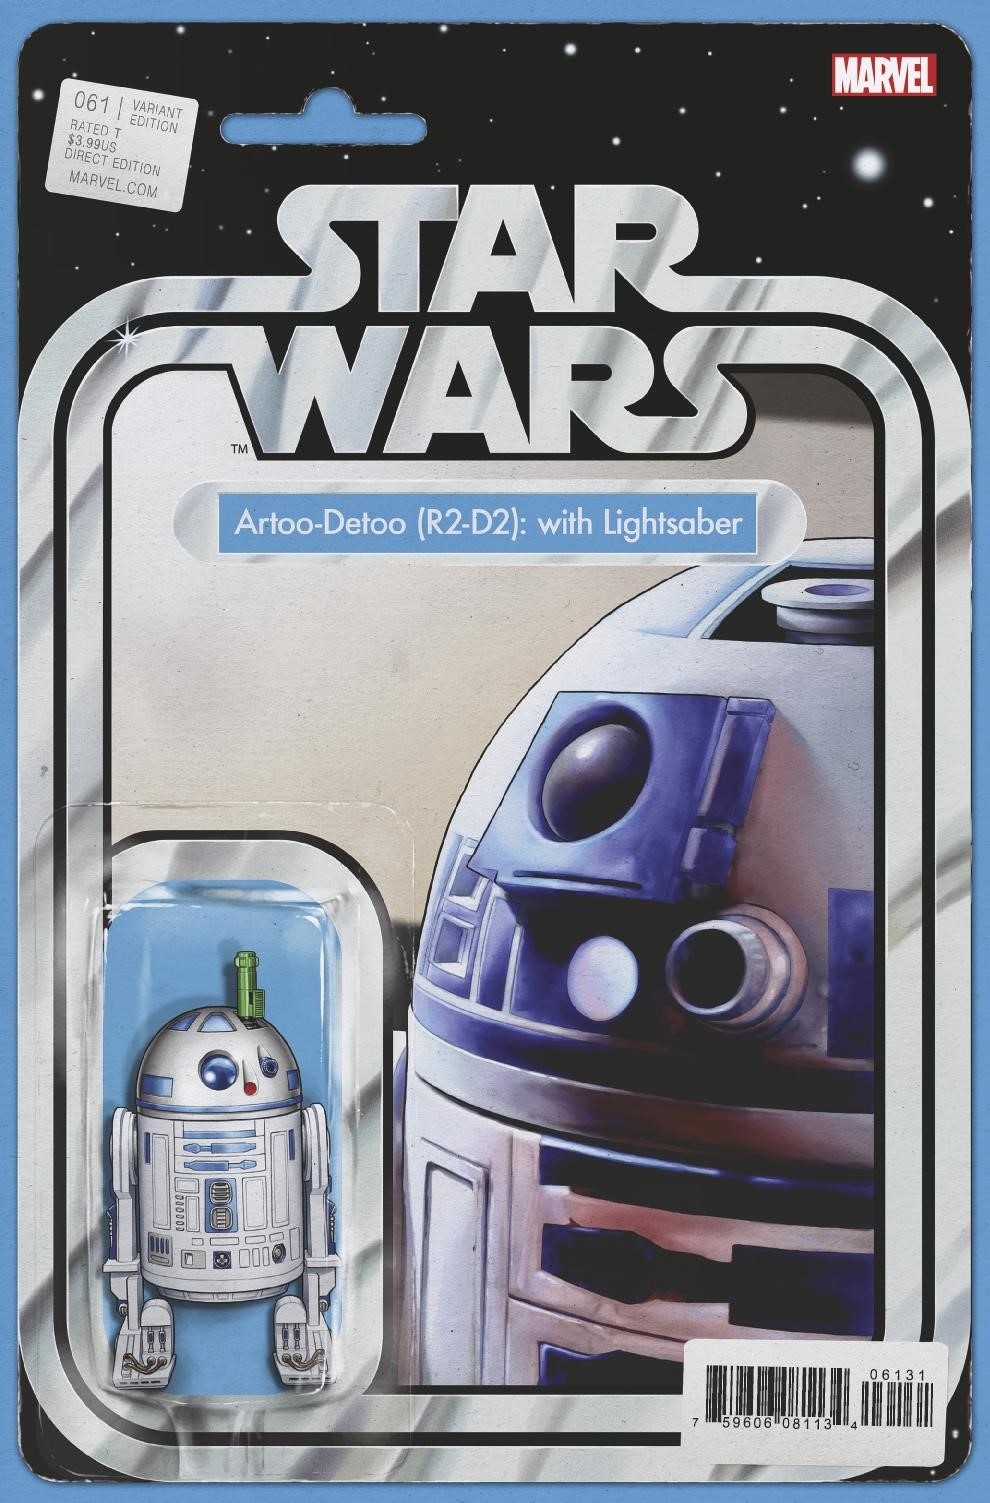 Star Wars #61 (Action Figure Variant Cover) (06.02.2019)